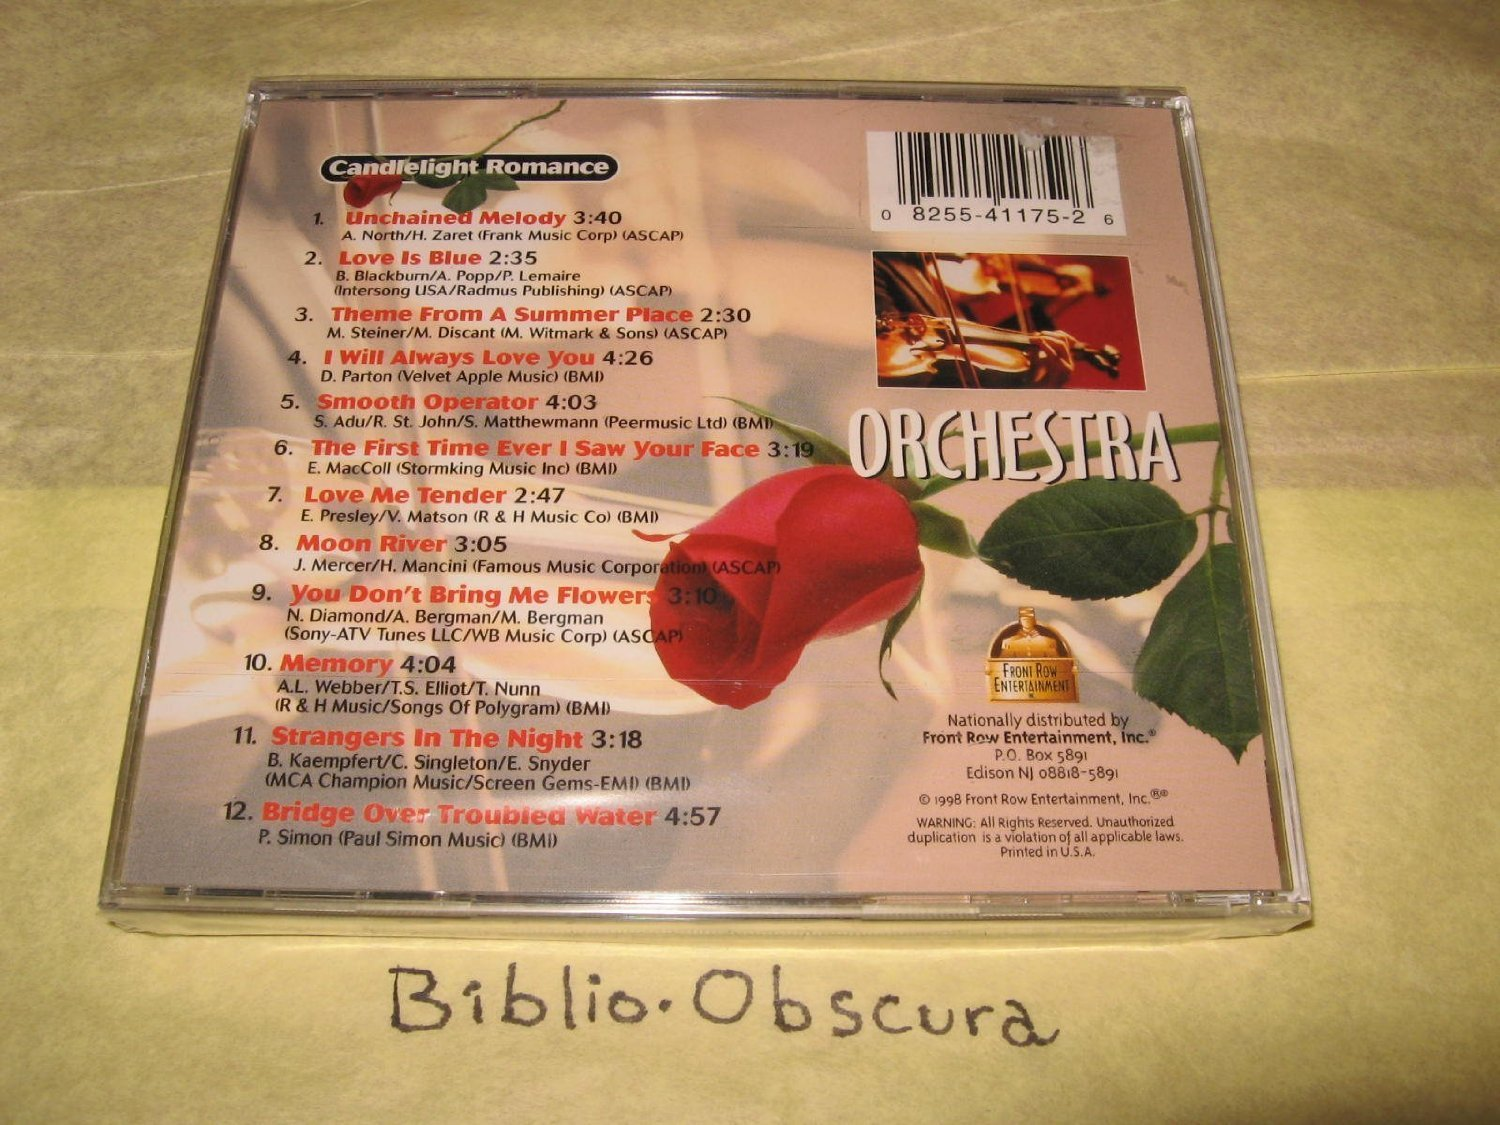 Candlelight Romance - Orchestra [Audio CD] various artists